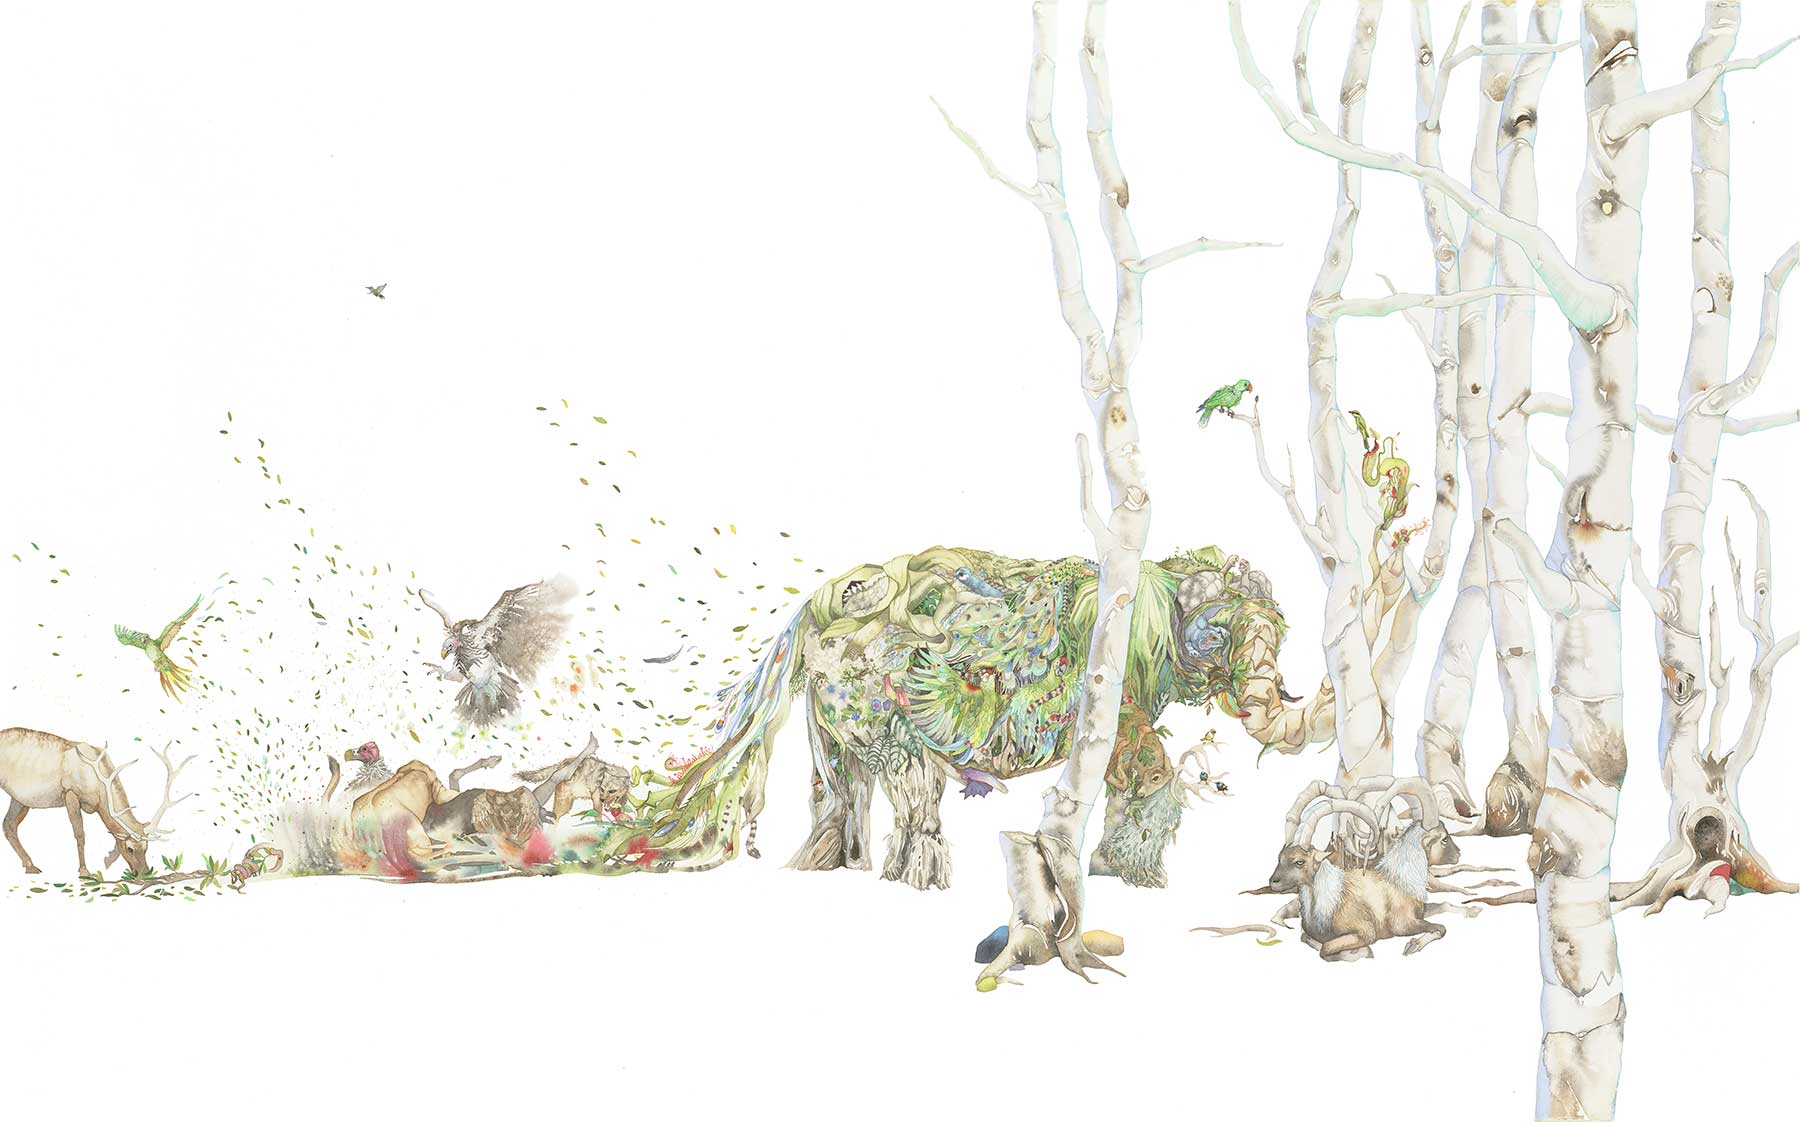 watercolor painting of elephant, other wildlife and trees